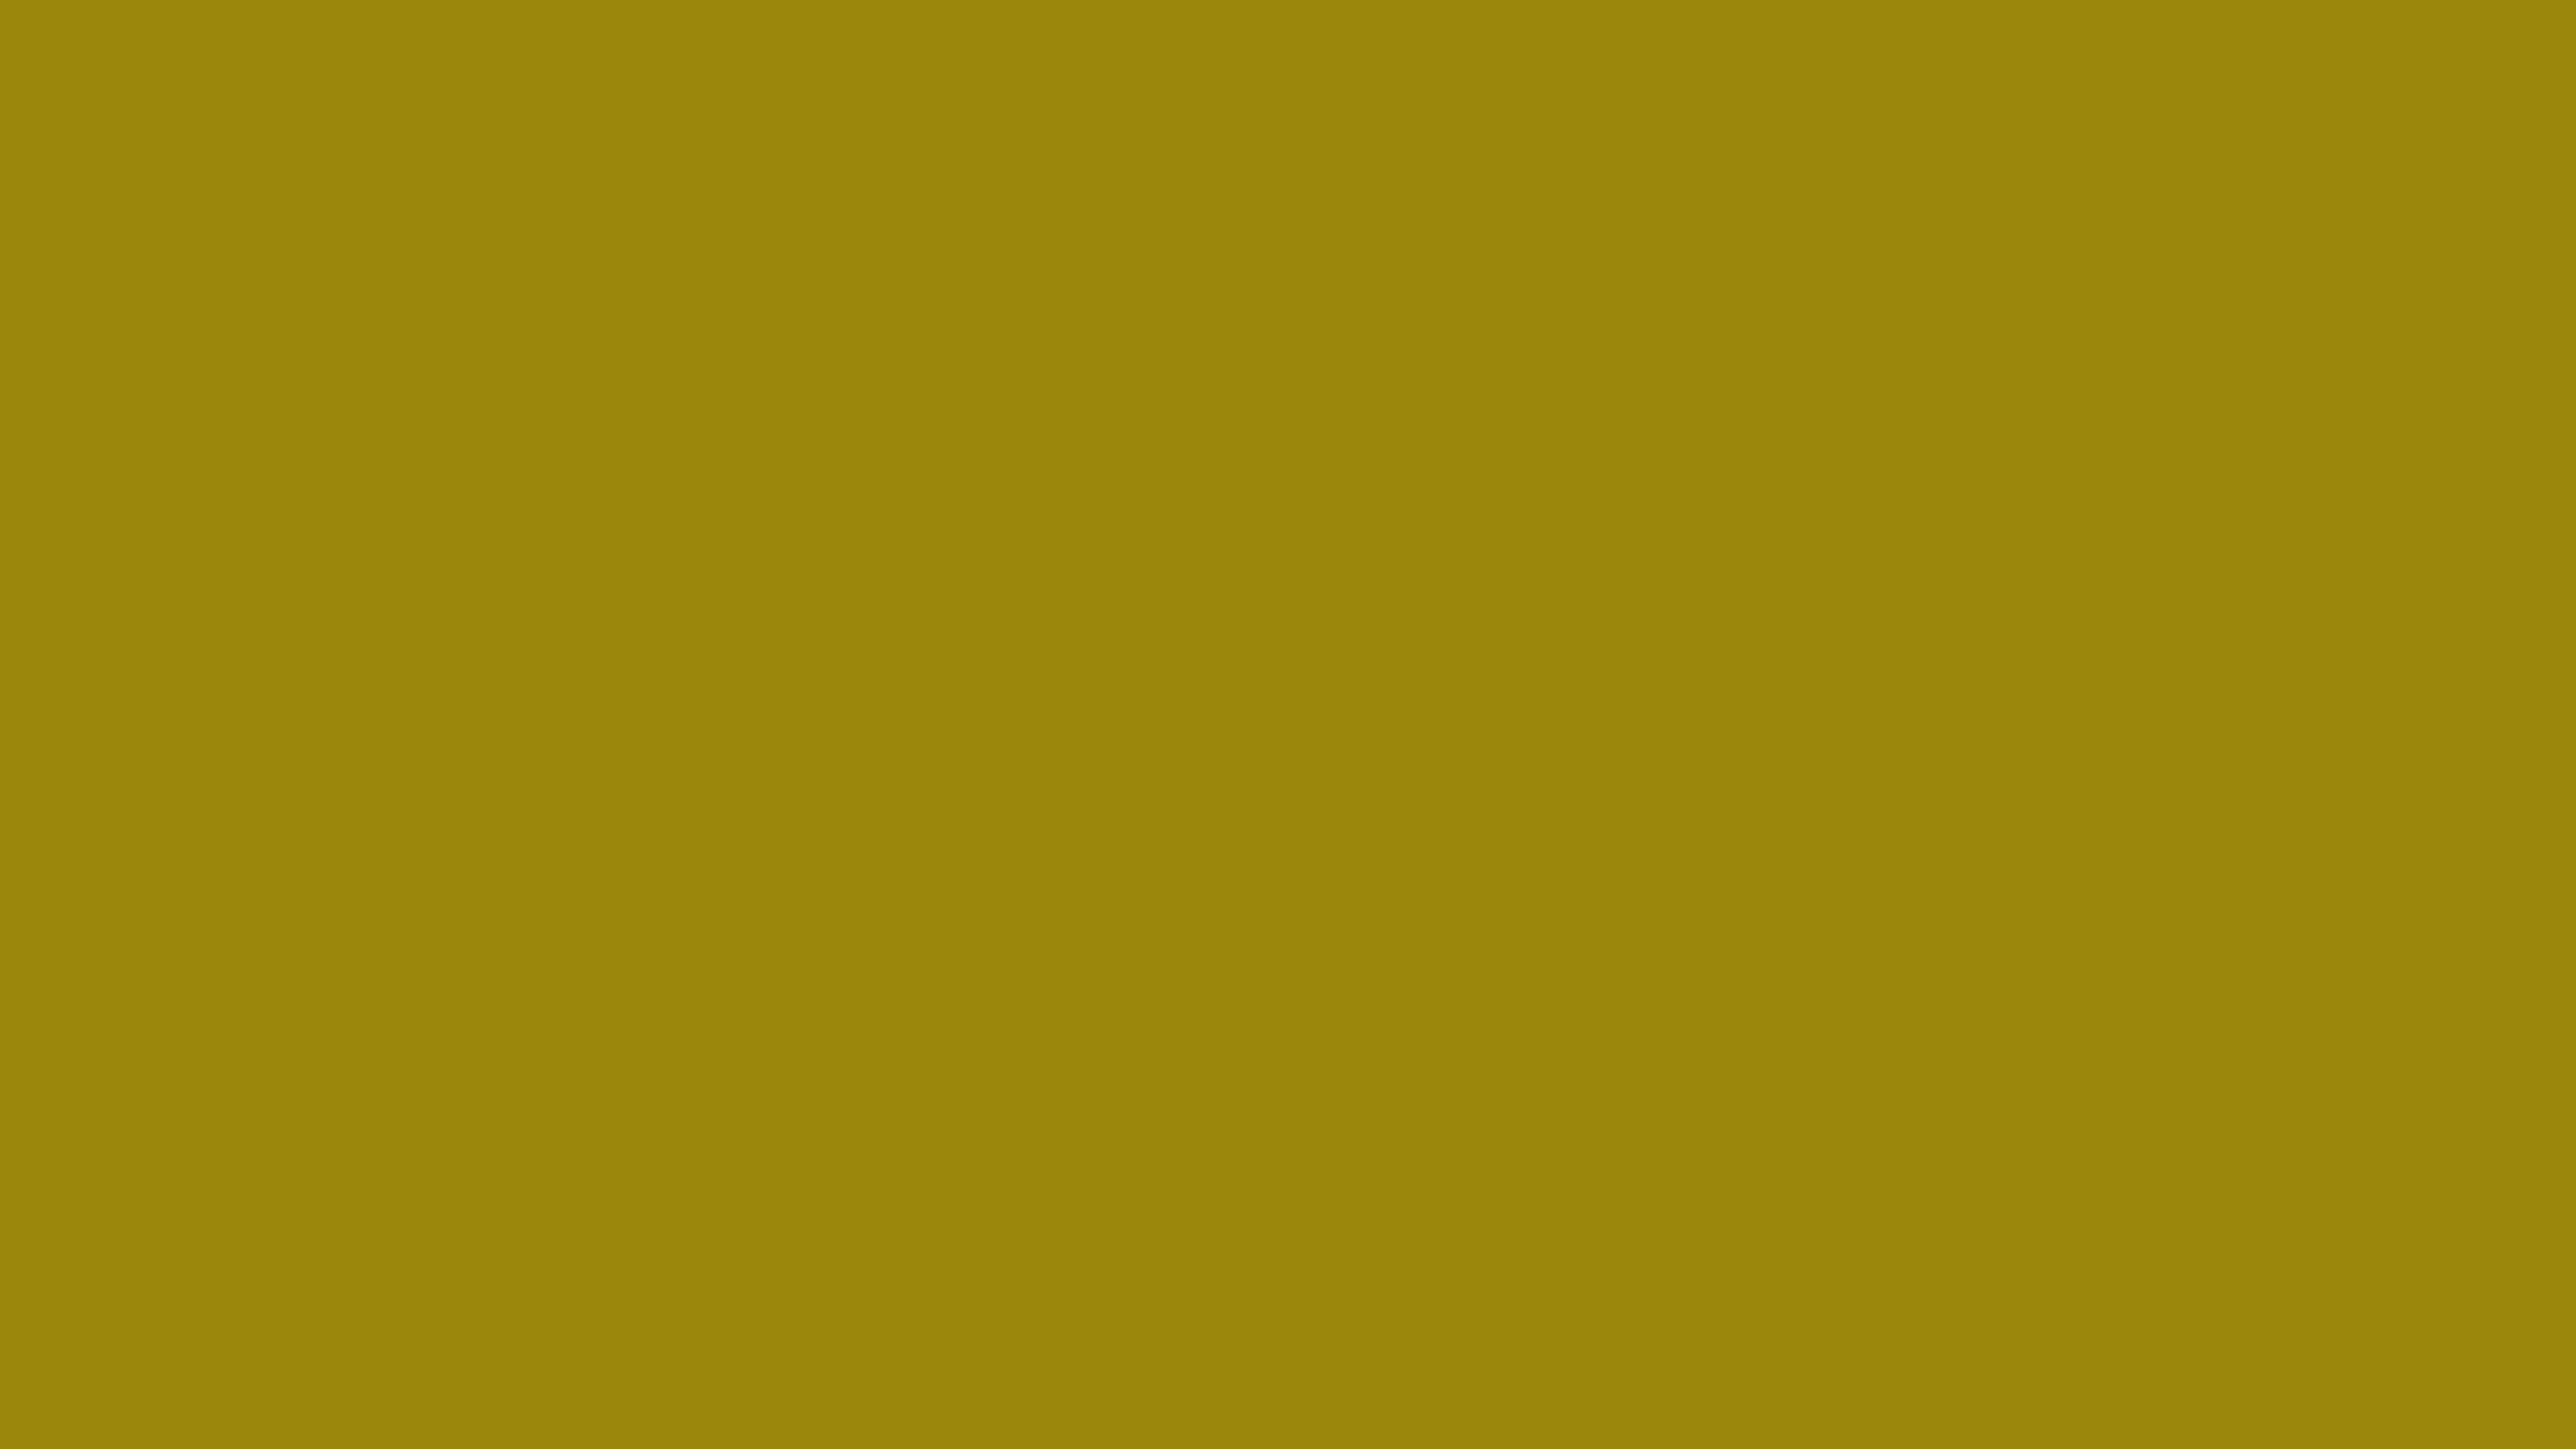 3840x2160 Dark Yellow Solid Color Background